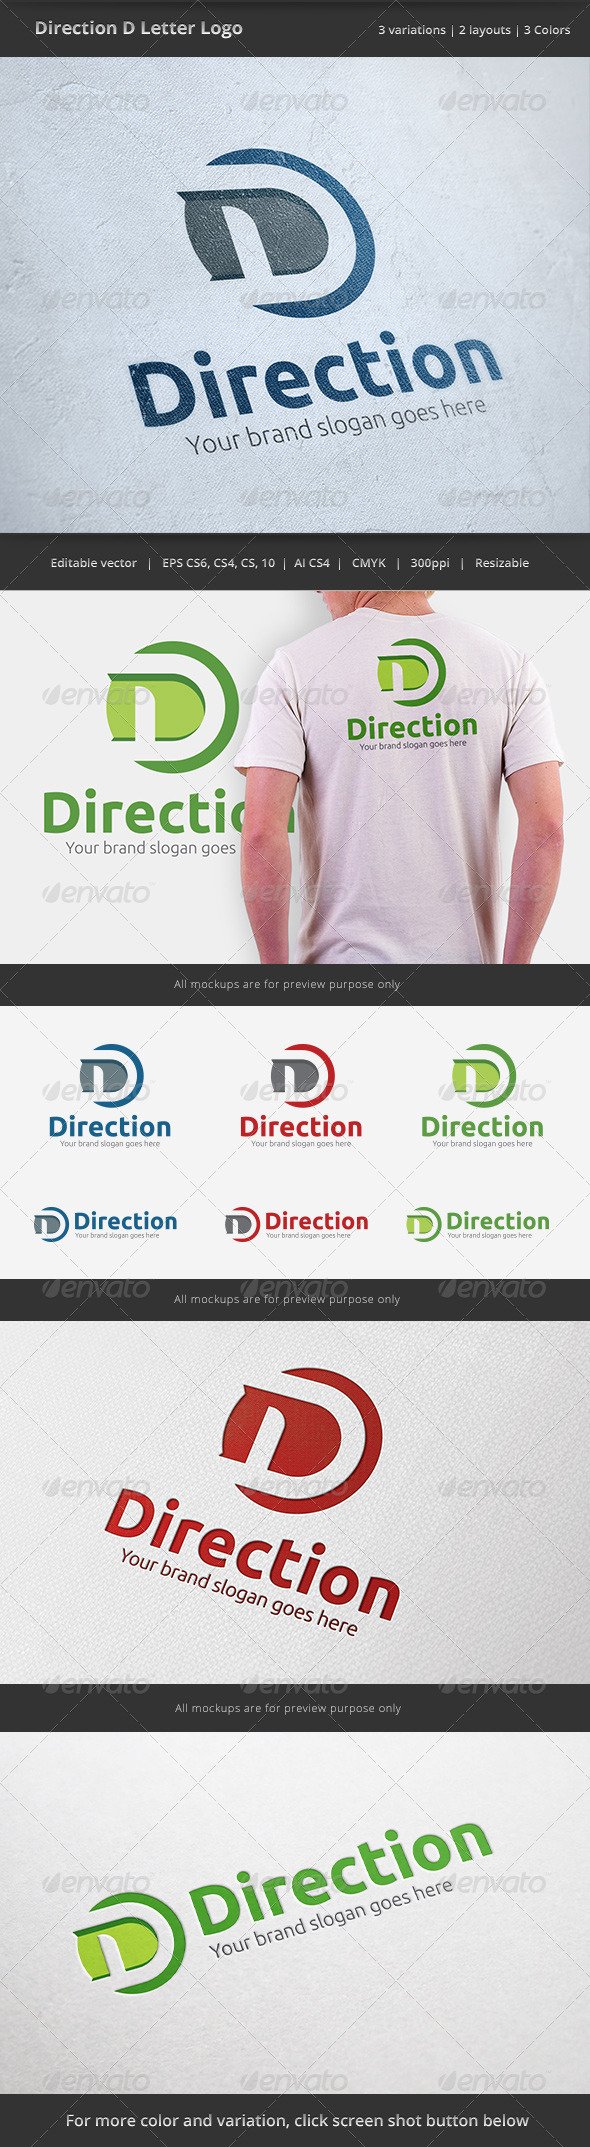 GraphicRiver Direction D Letter Logo 6502125